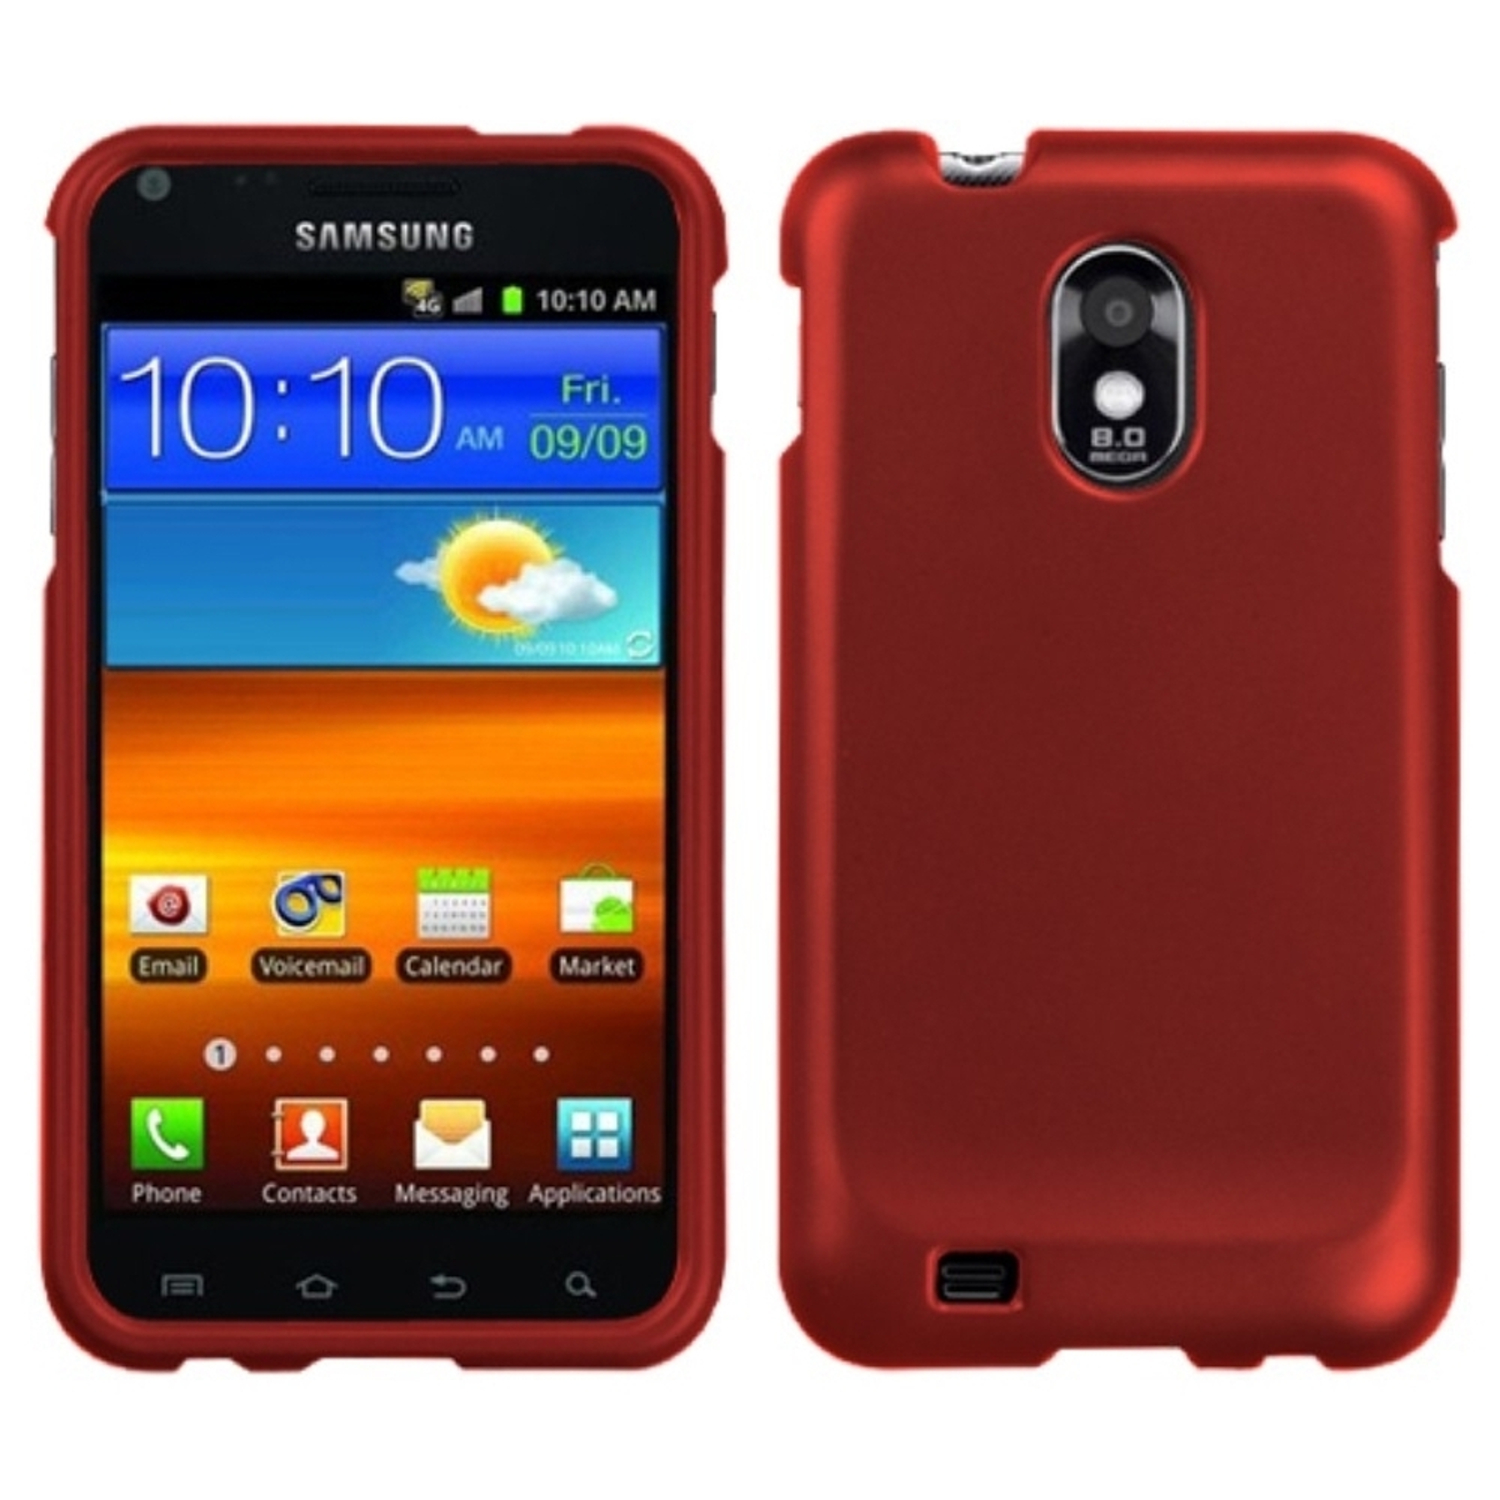 Insten Titanium Solid Red Phone Case for SAMSUNG: D710 (Epic 4G Touch), R760 (Galaxy S II), Galaxy S II 4G